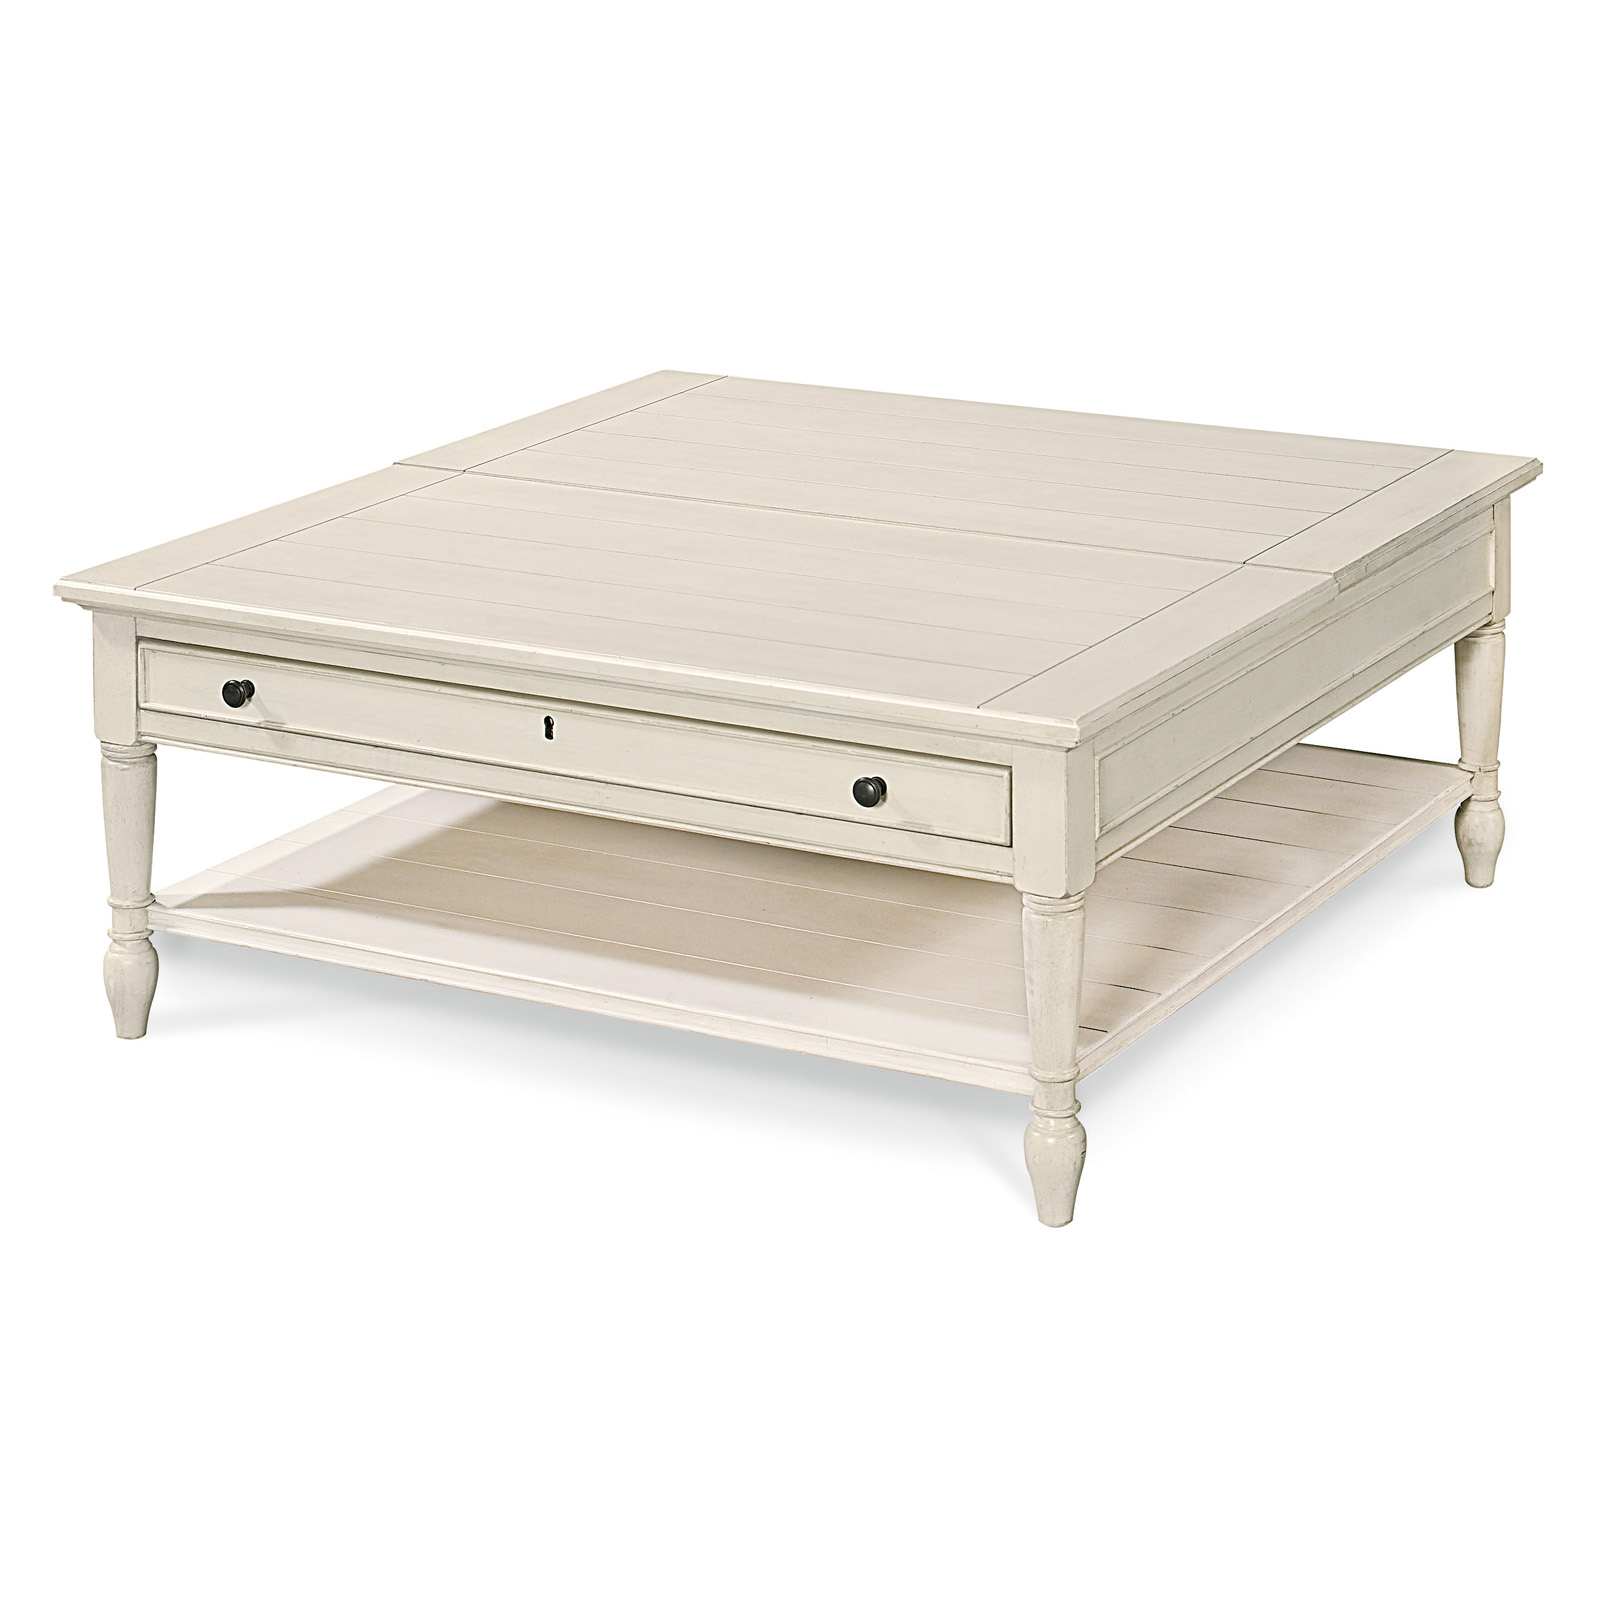 Summer Hill Lift Top Coffee Table Cotton